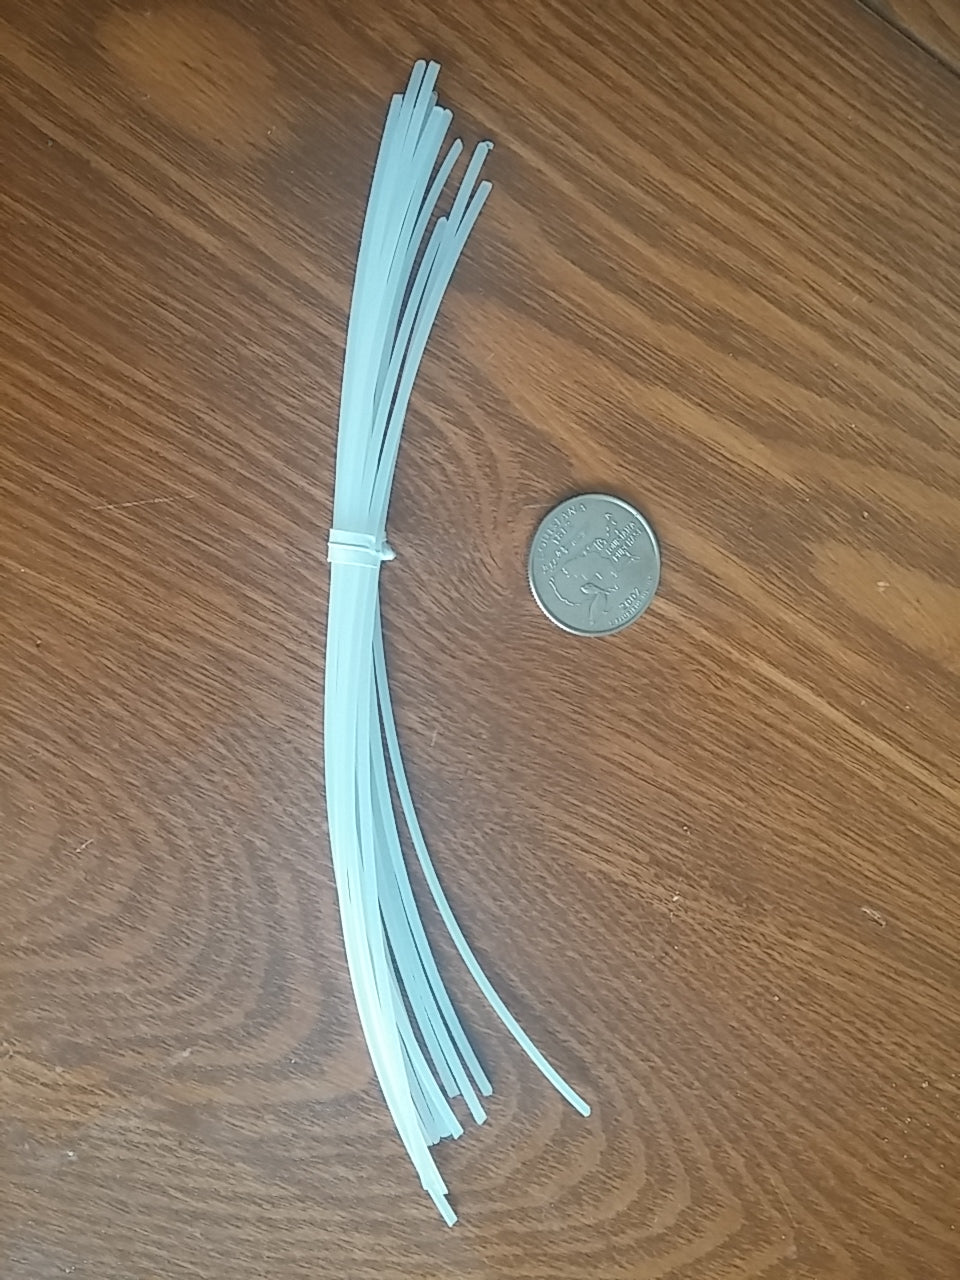 "A pack of approximately 6"" long extruder cleanout filament."